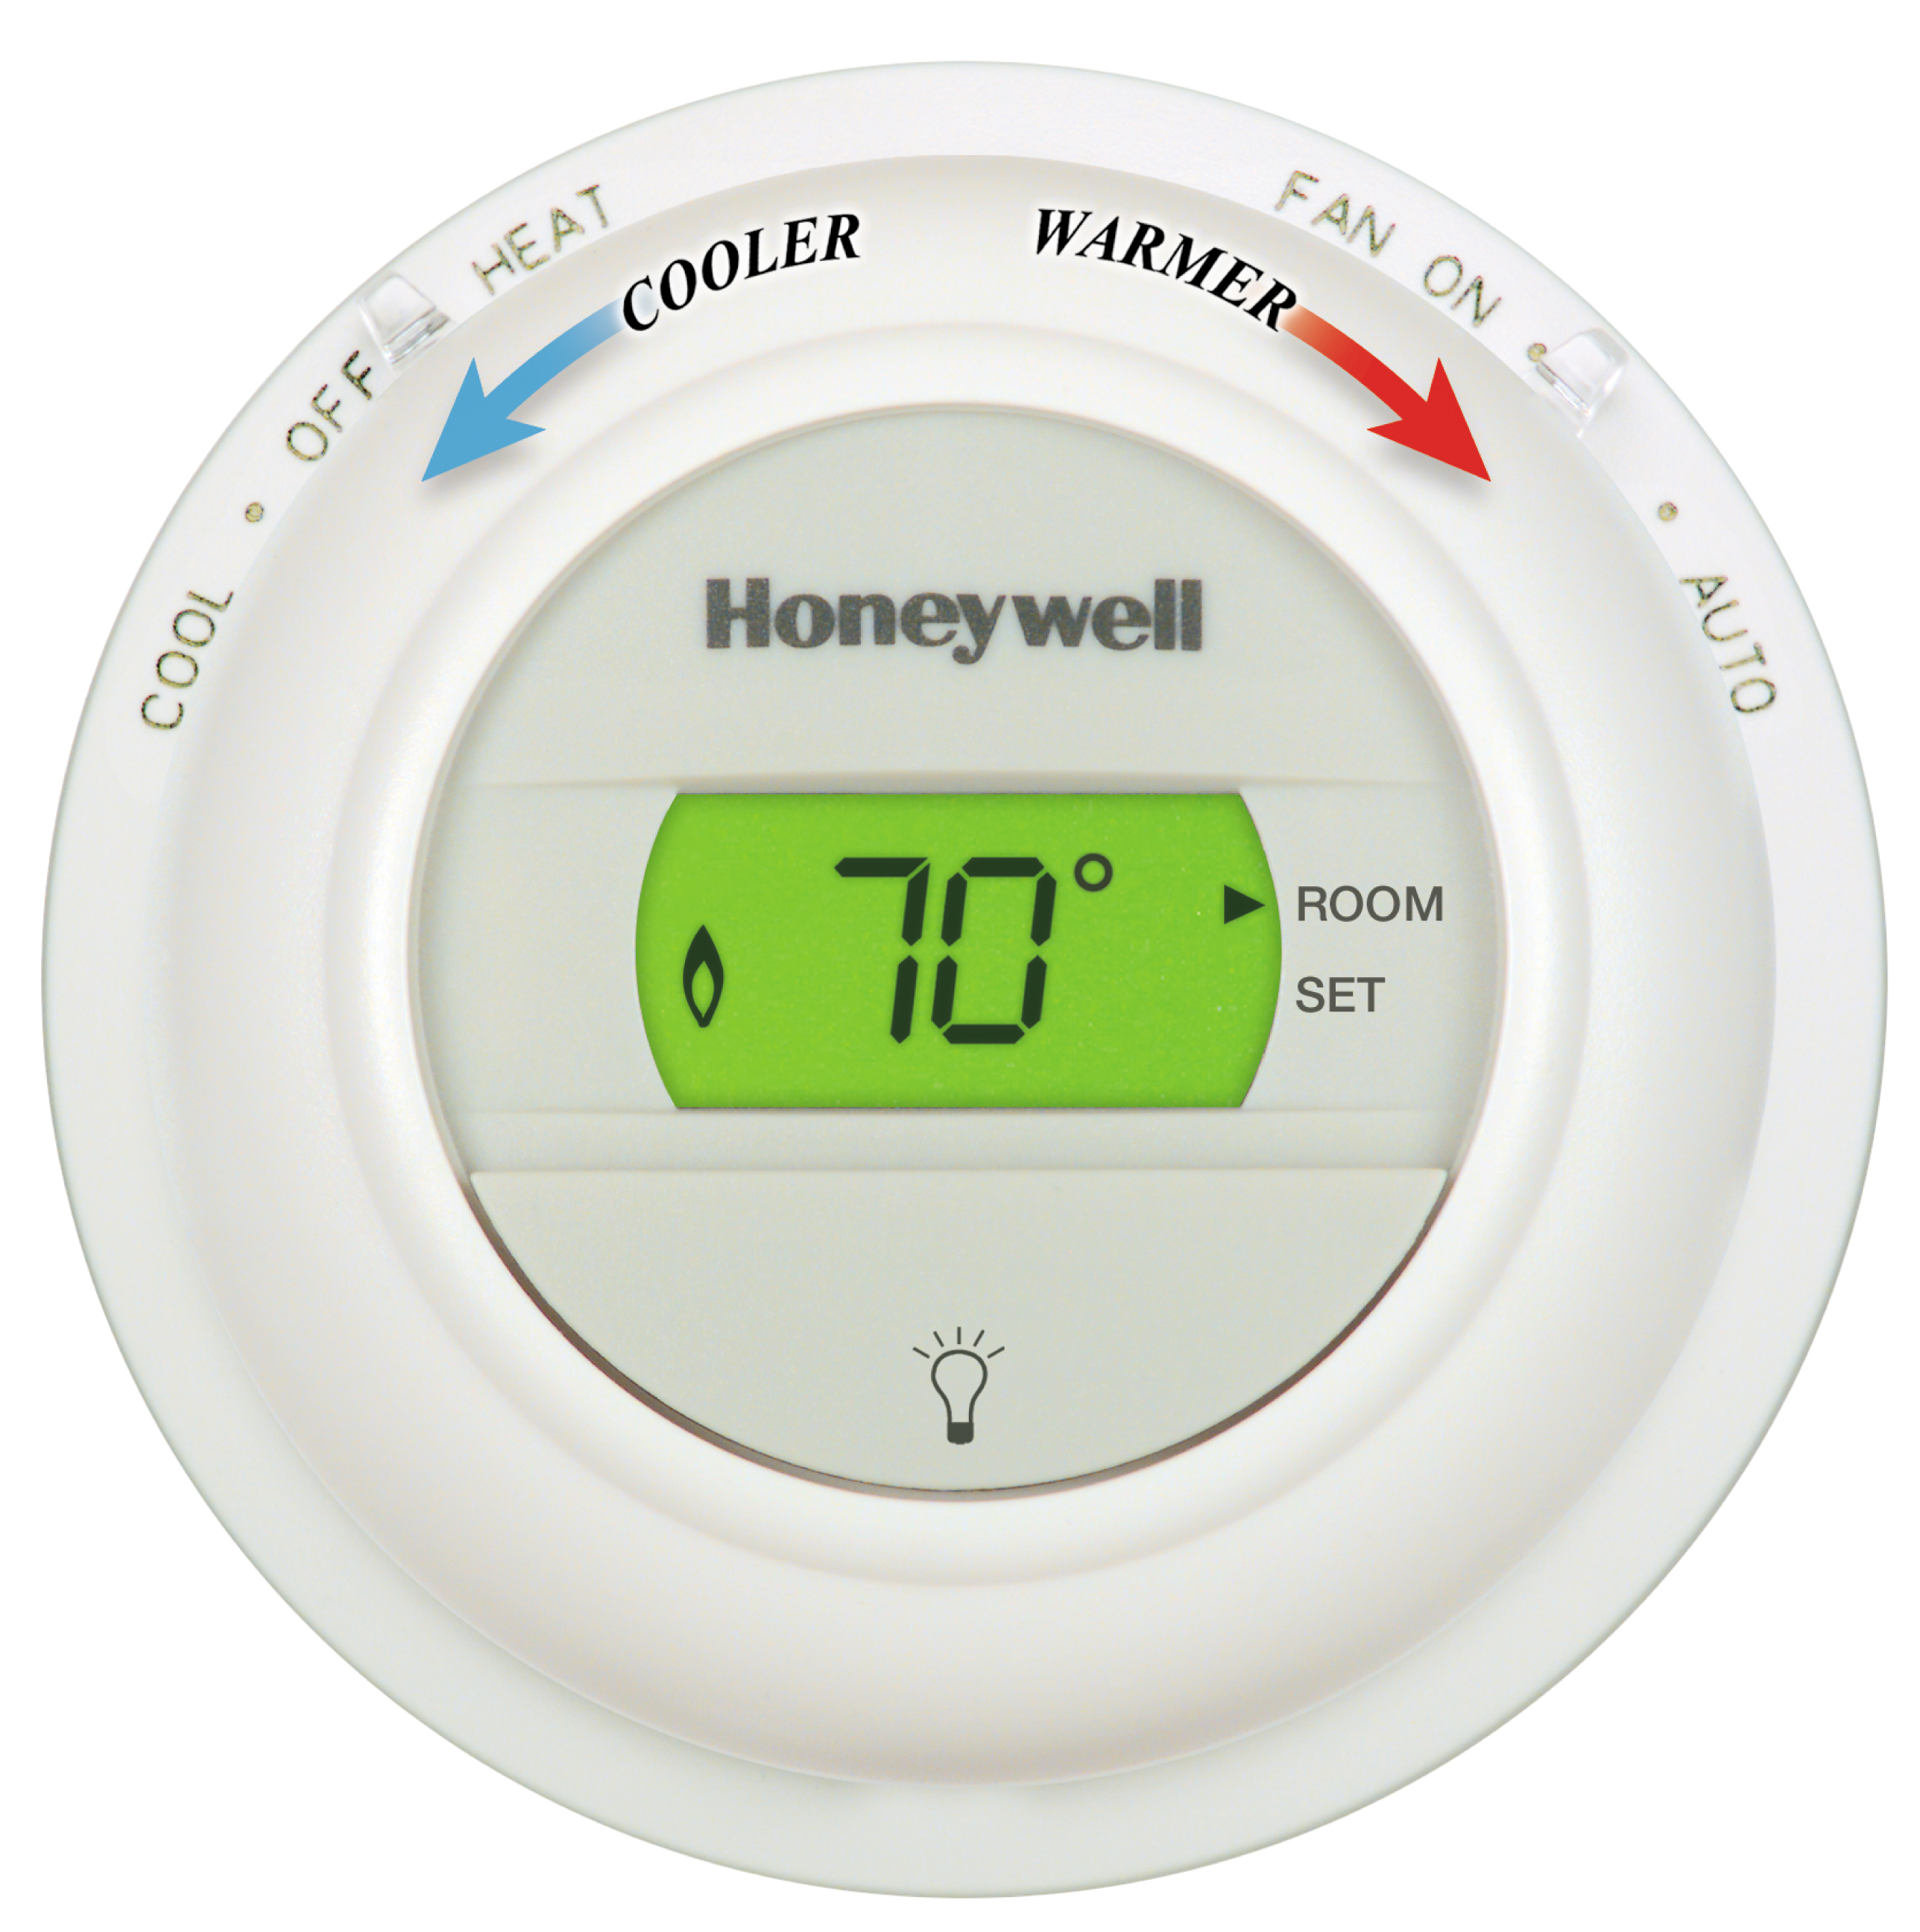 Honeywell Round Thermostat Manual Various Owner Guide Rth7500d Wiring Diagram Enthusiast Diagrams Non Programmable 1h 1c Jackson Systems Rh Jacksonsystems Com Installation Instructions